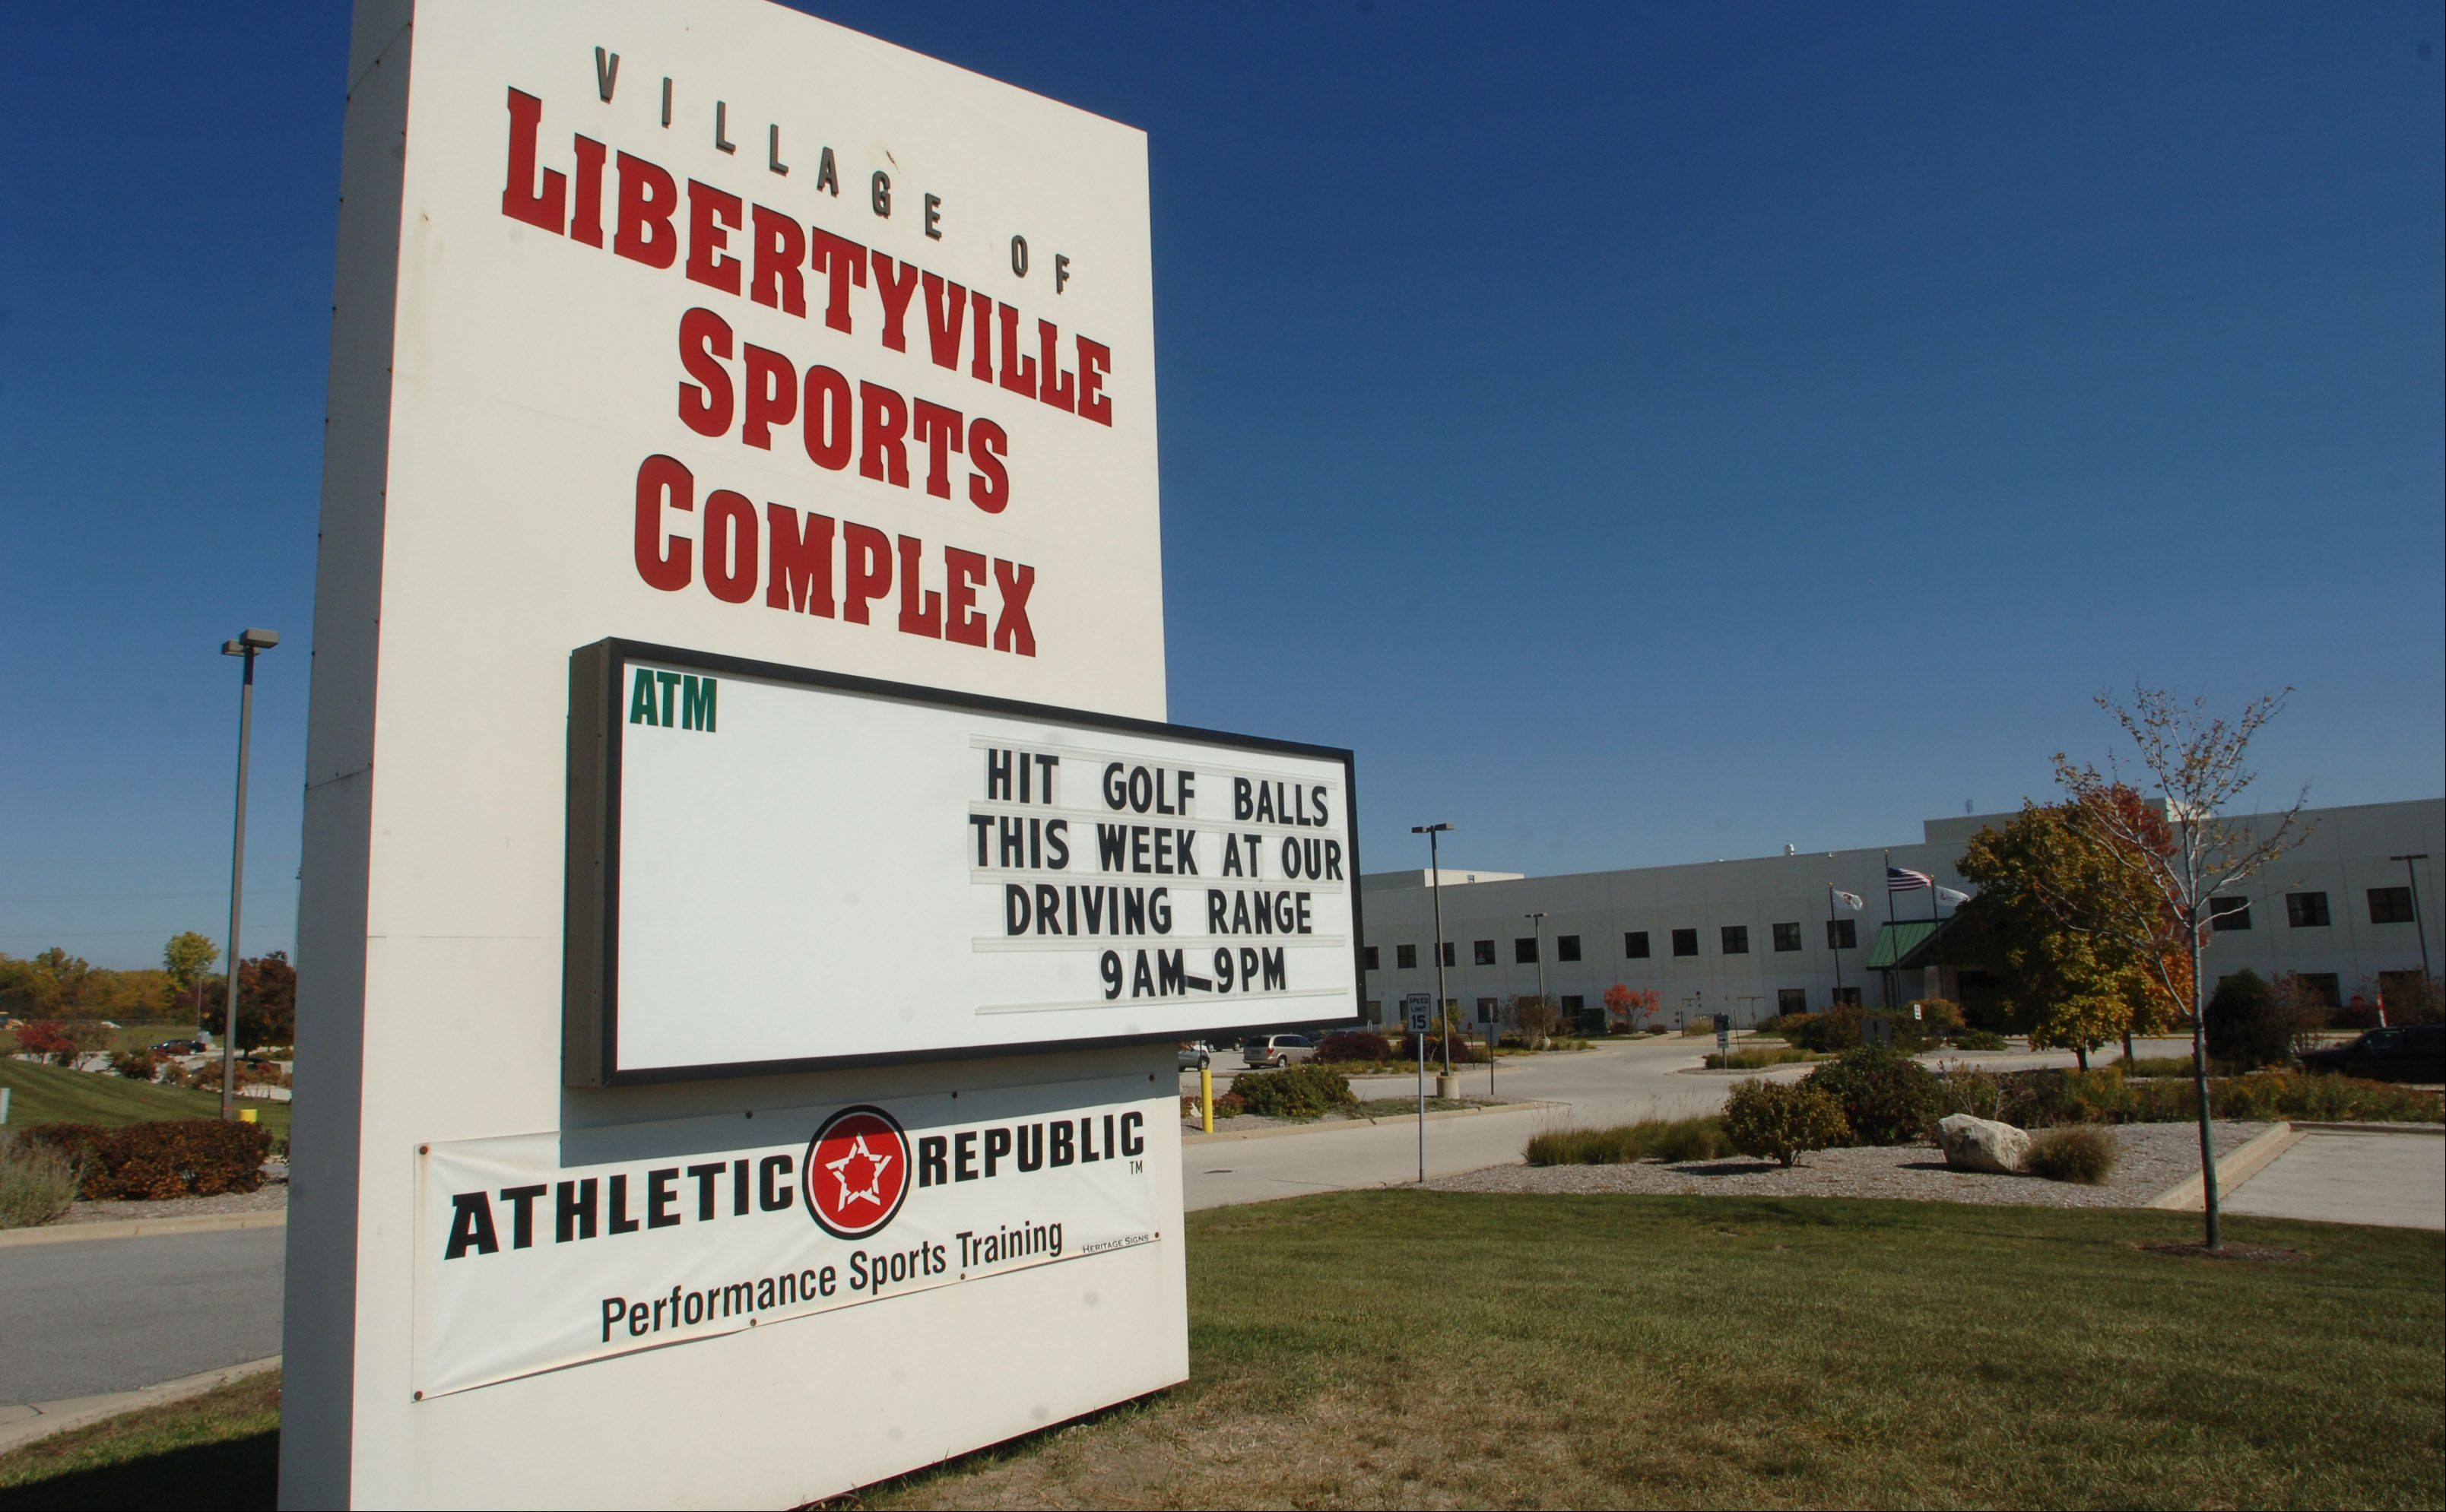 Naming rights for the Libertyville Sports Complex at Route 45 and Peterson Road in Libertyville is now available.